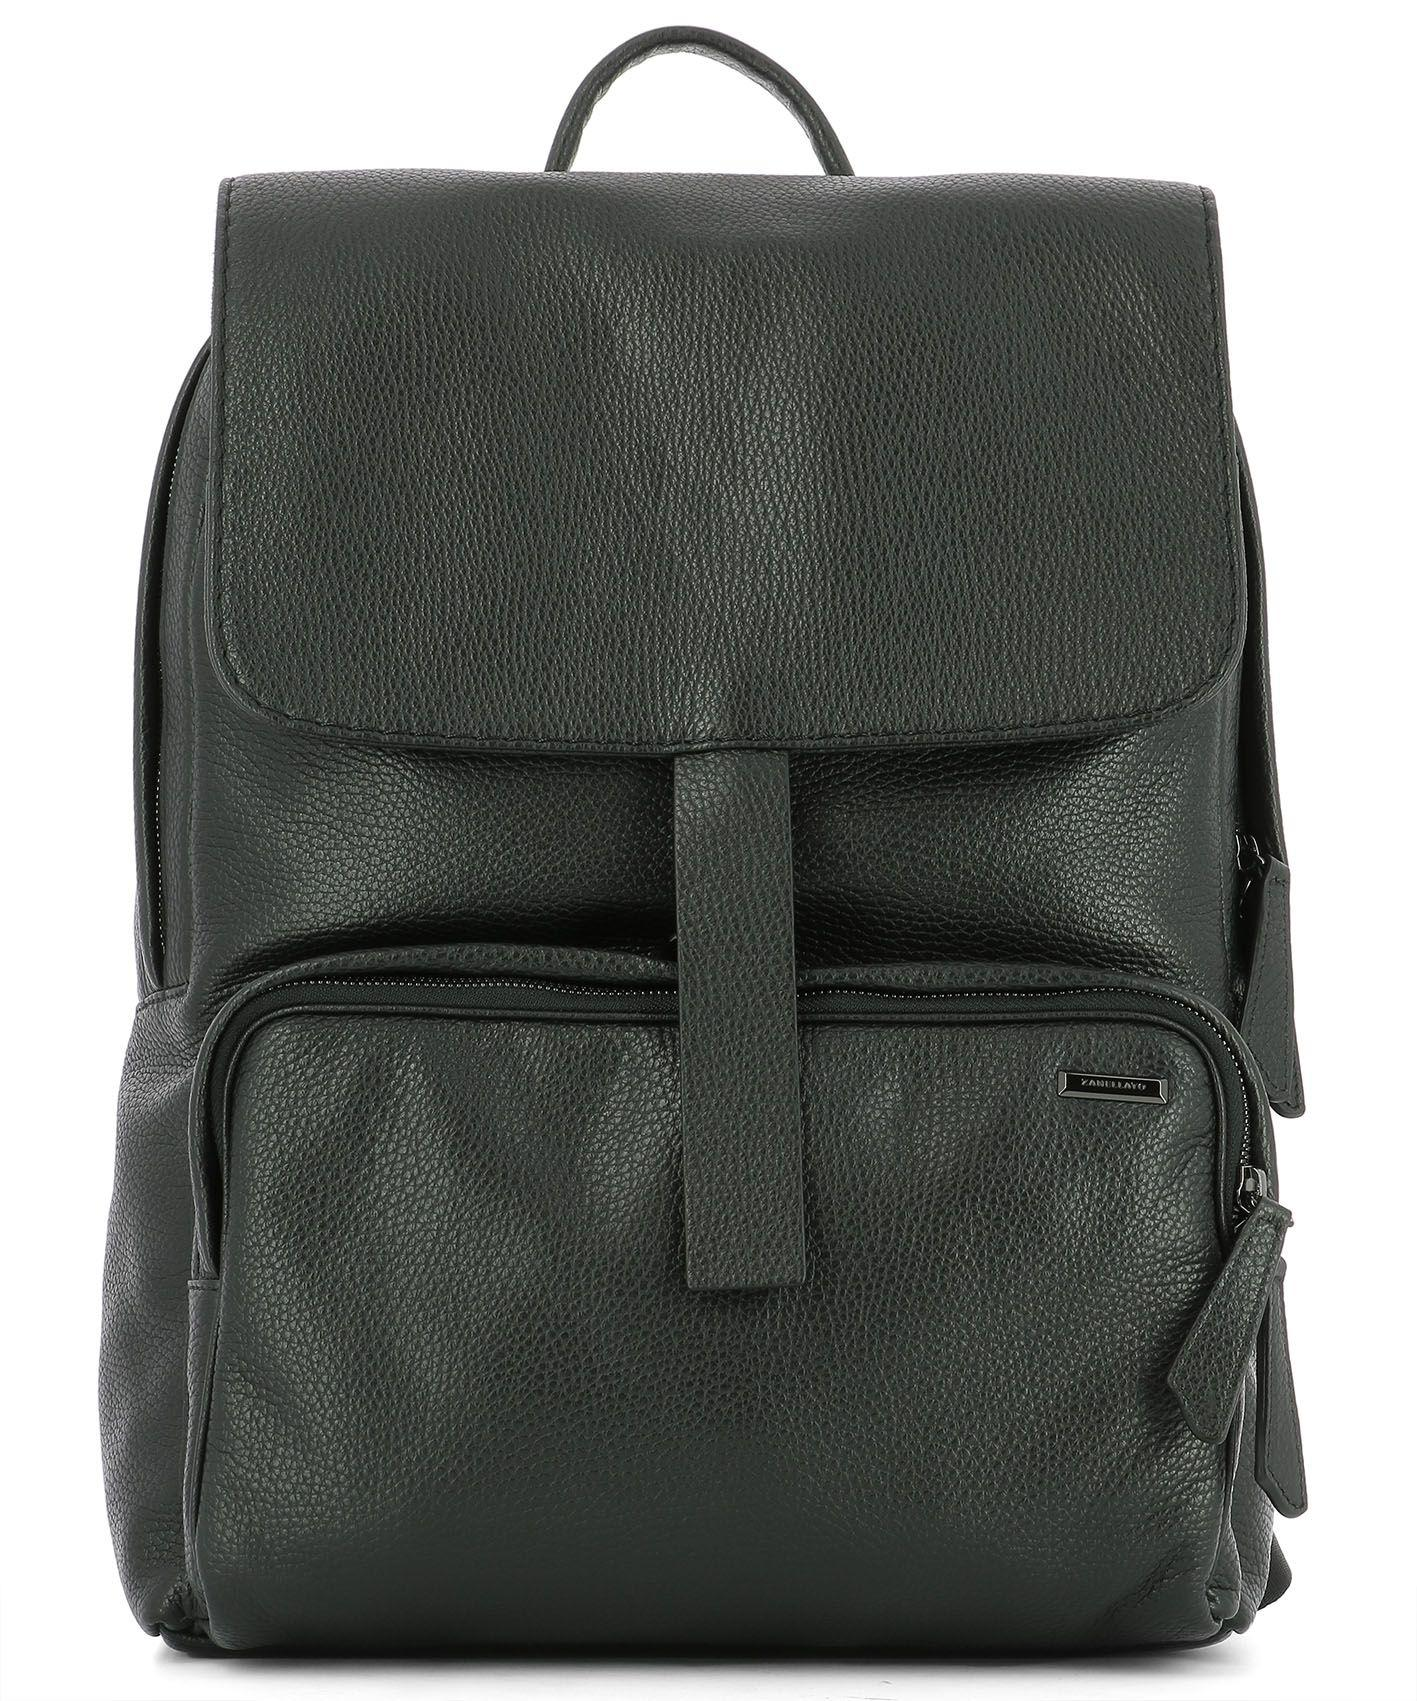 Zanellato Black Leather Backpack